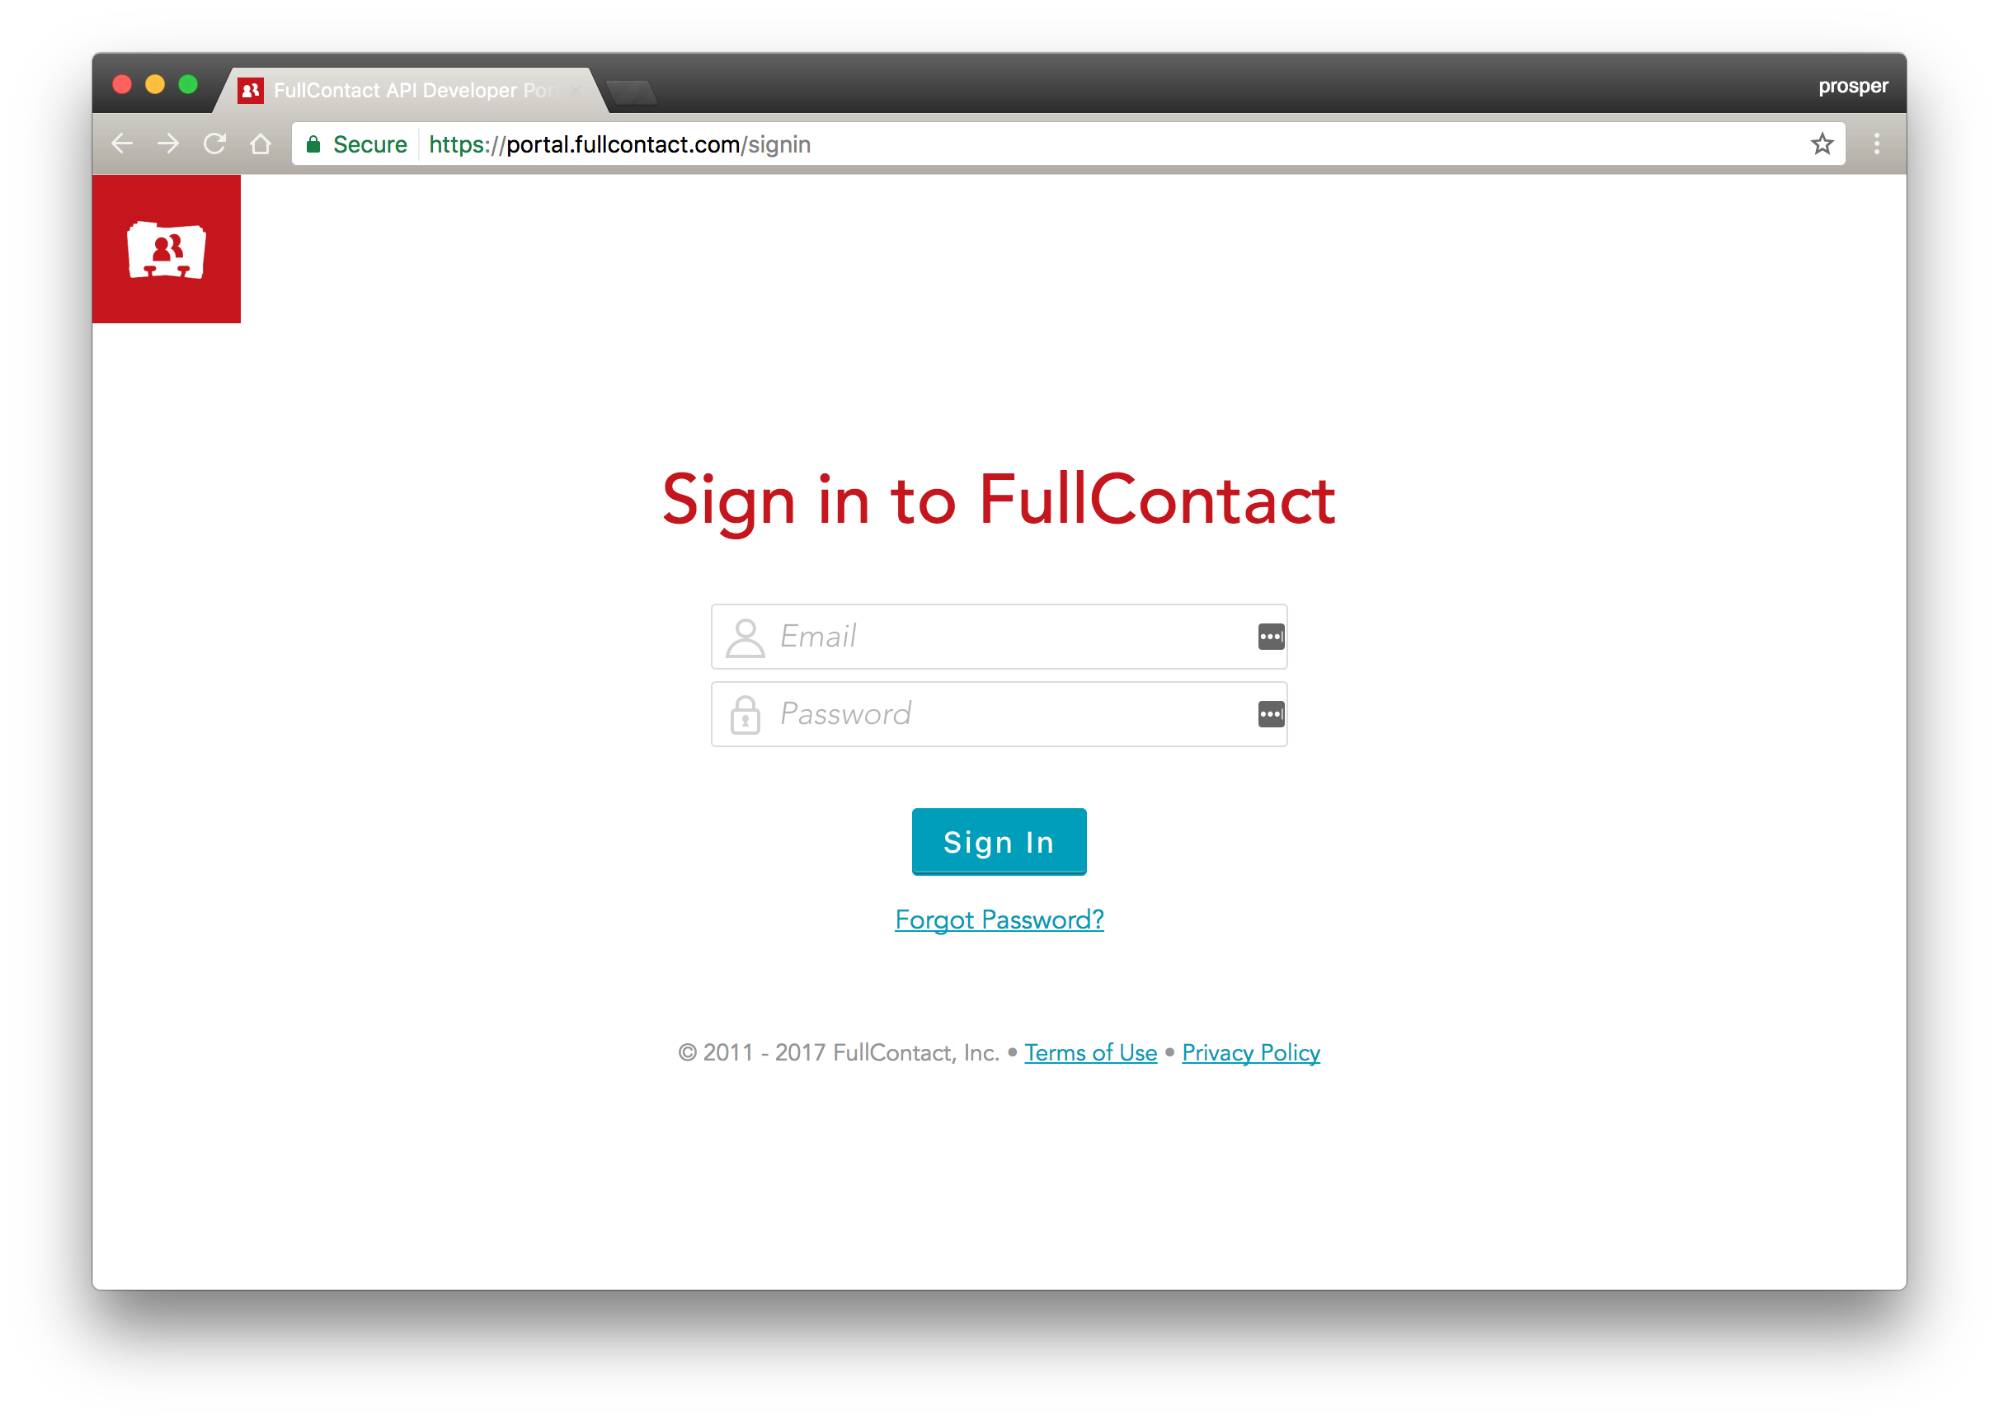 Sign in to FullContact